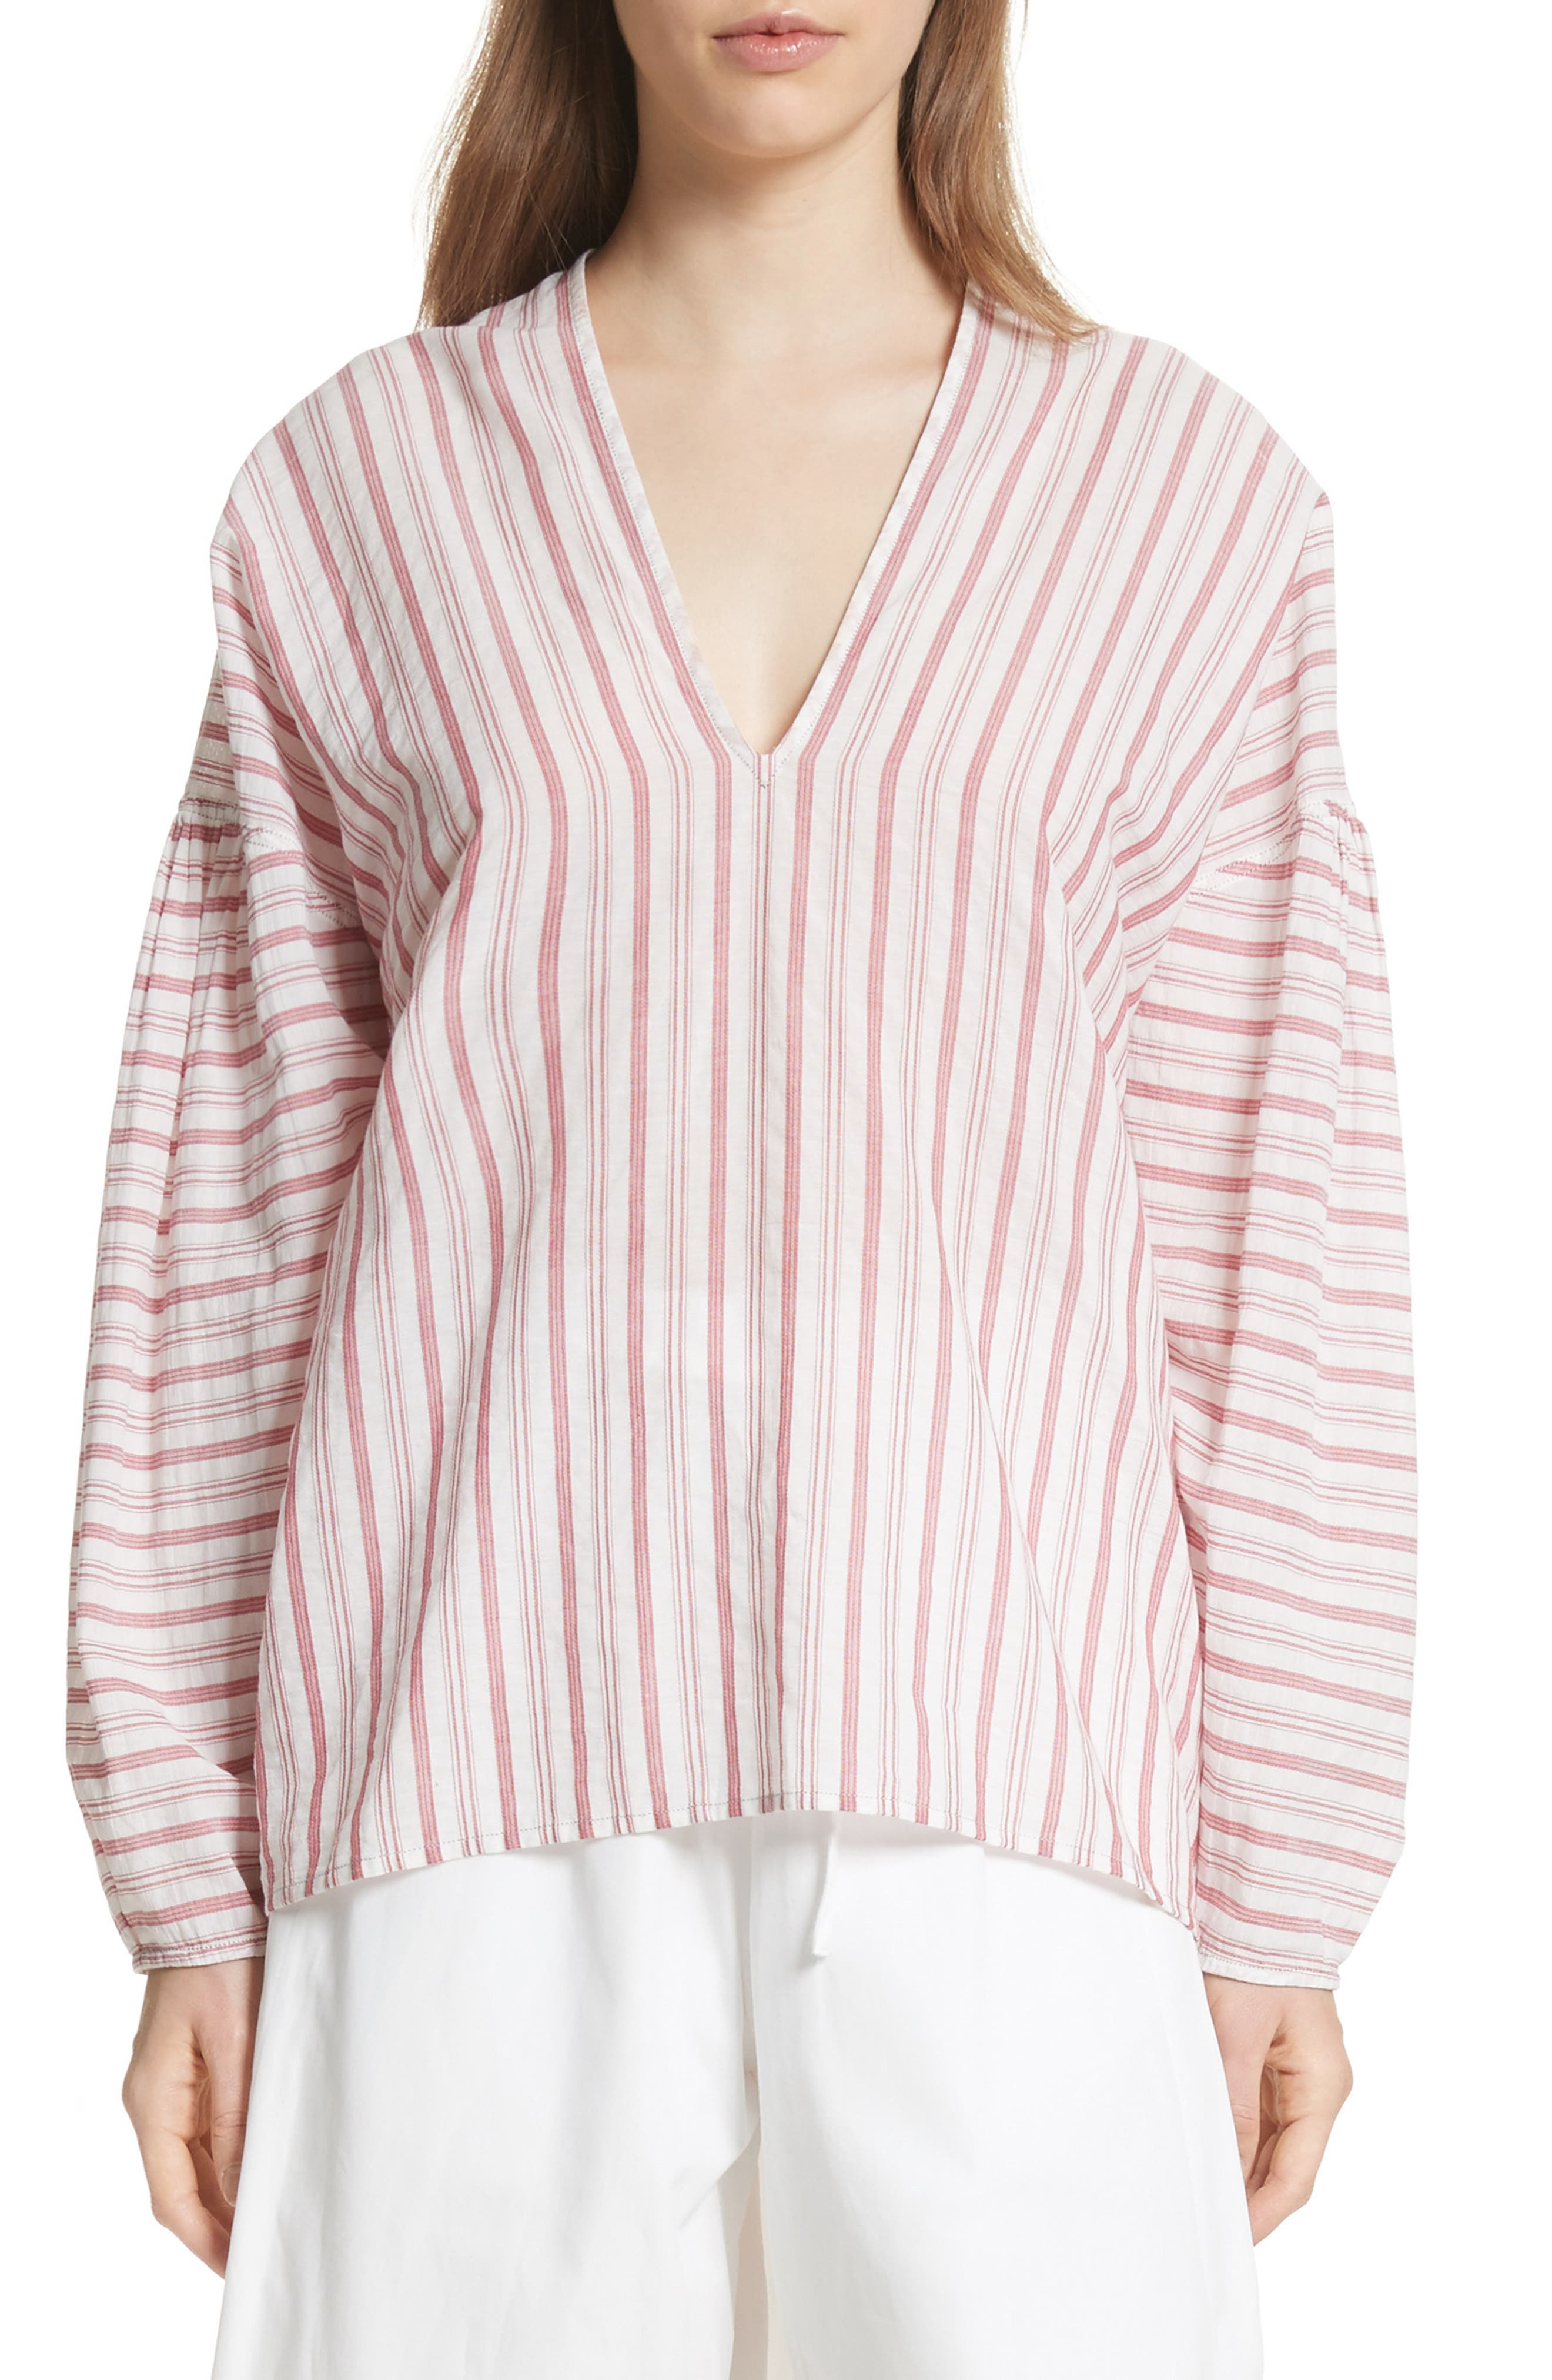 Stripe Cotton Top,                             Main thumbnail 1, color,                             Off White/ Poppy